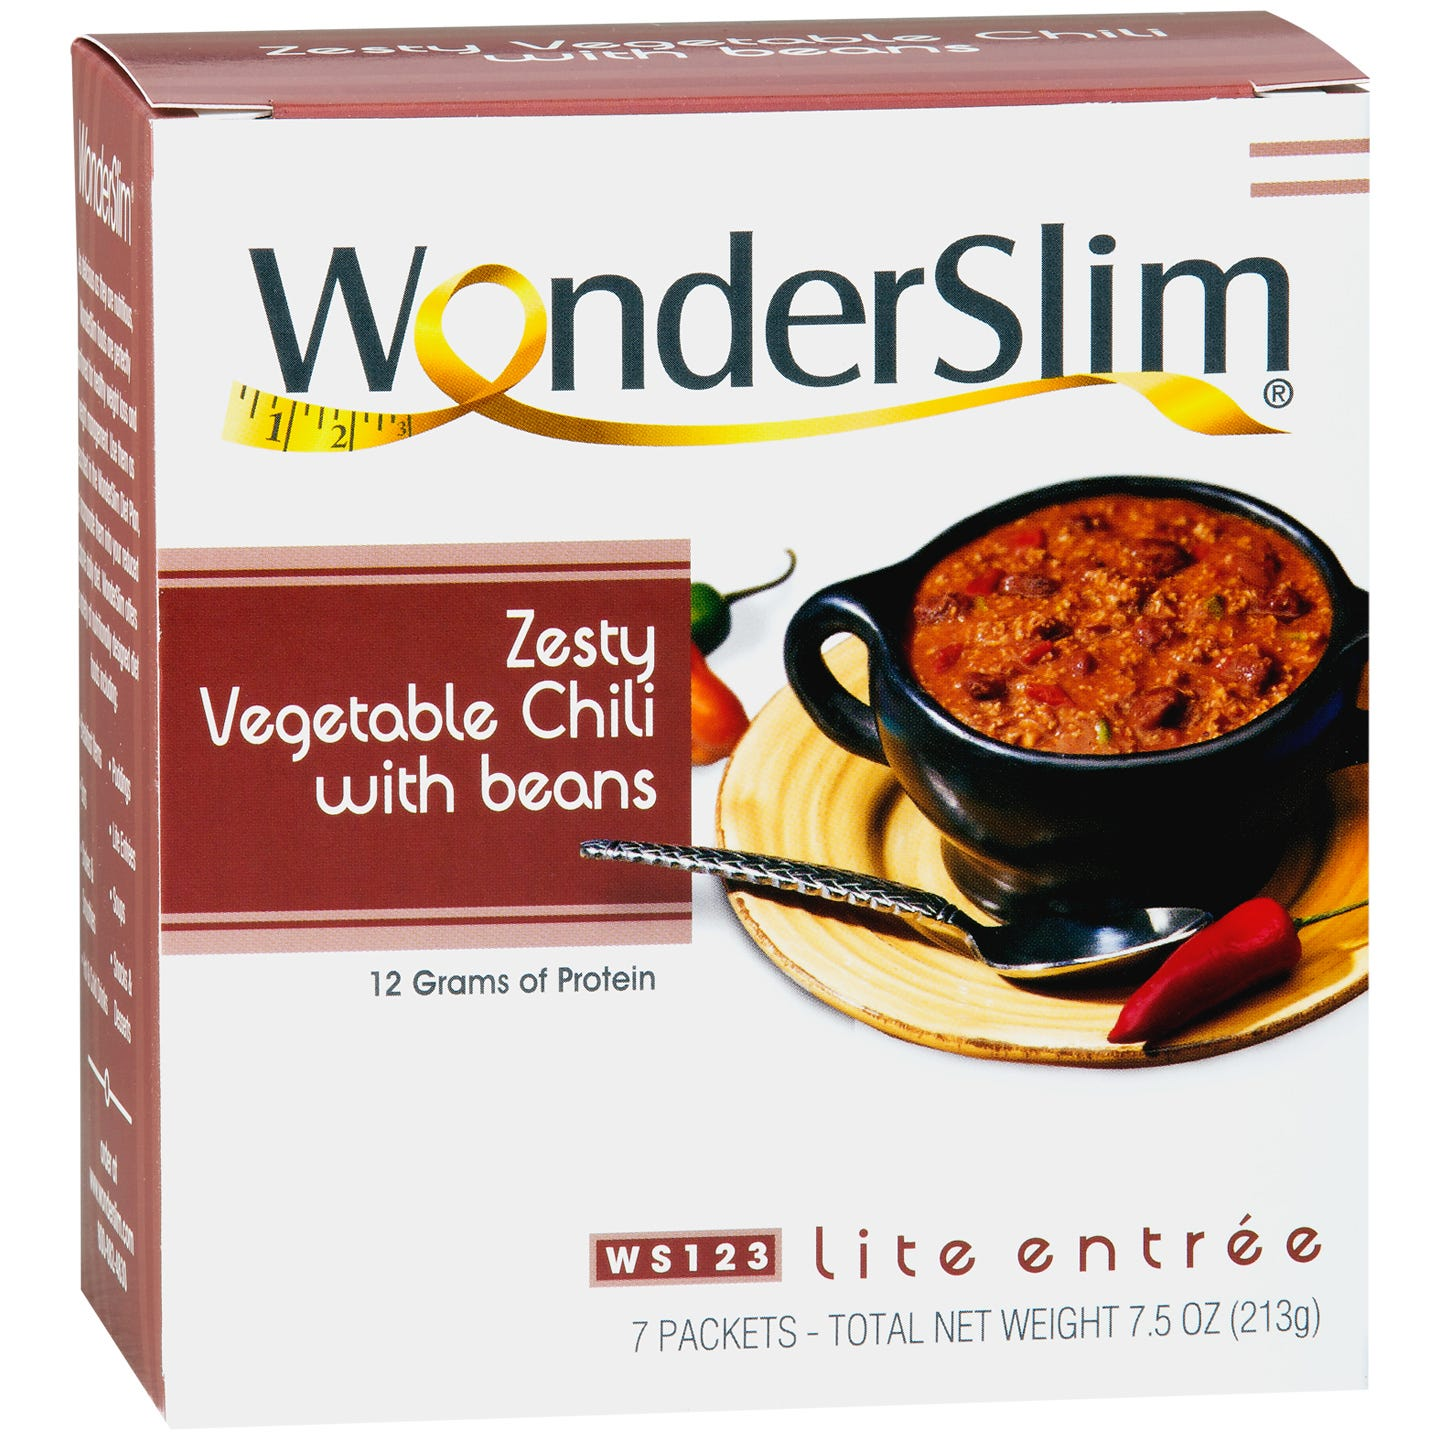 WonderSlim Chili with Beans